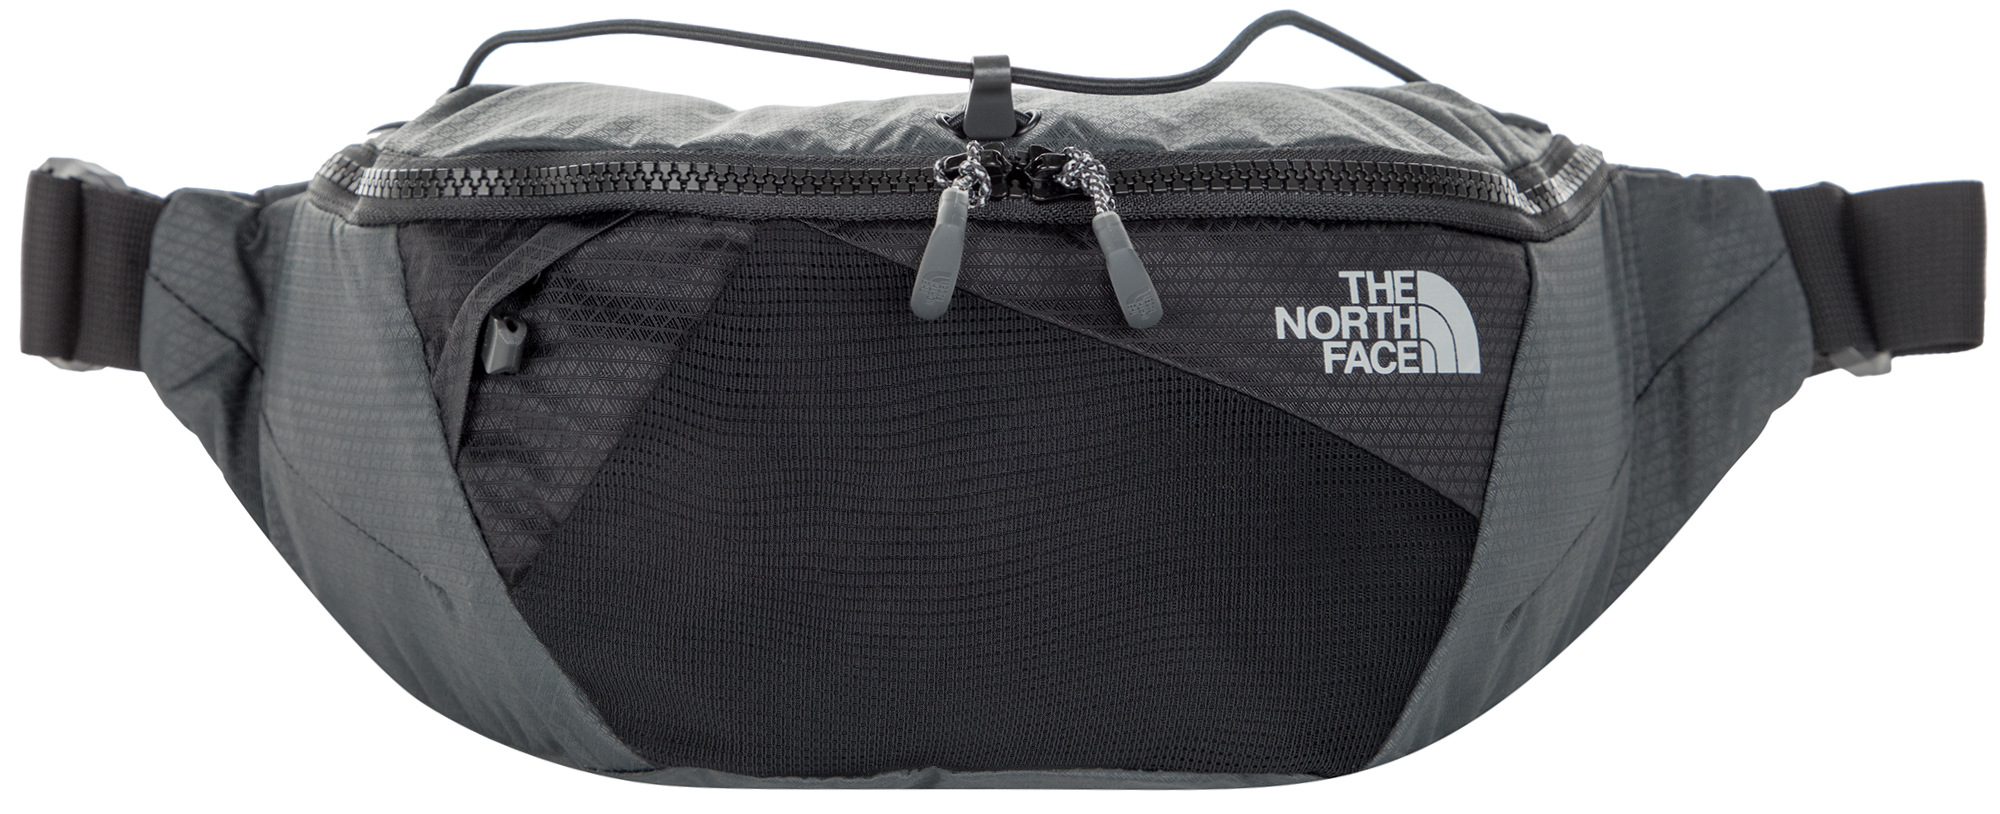 The North Face Сумка на пояс The North Face Lumbnical